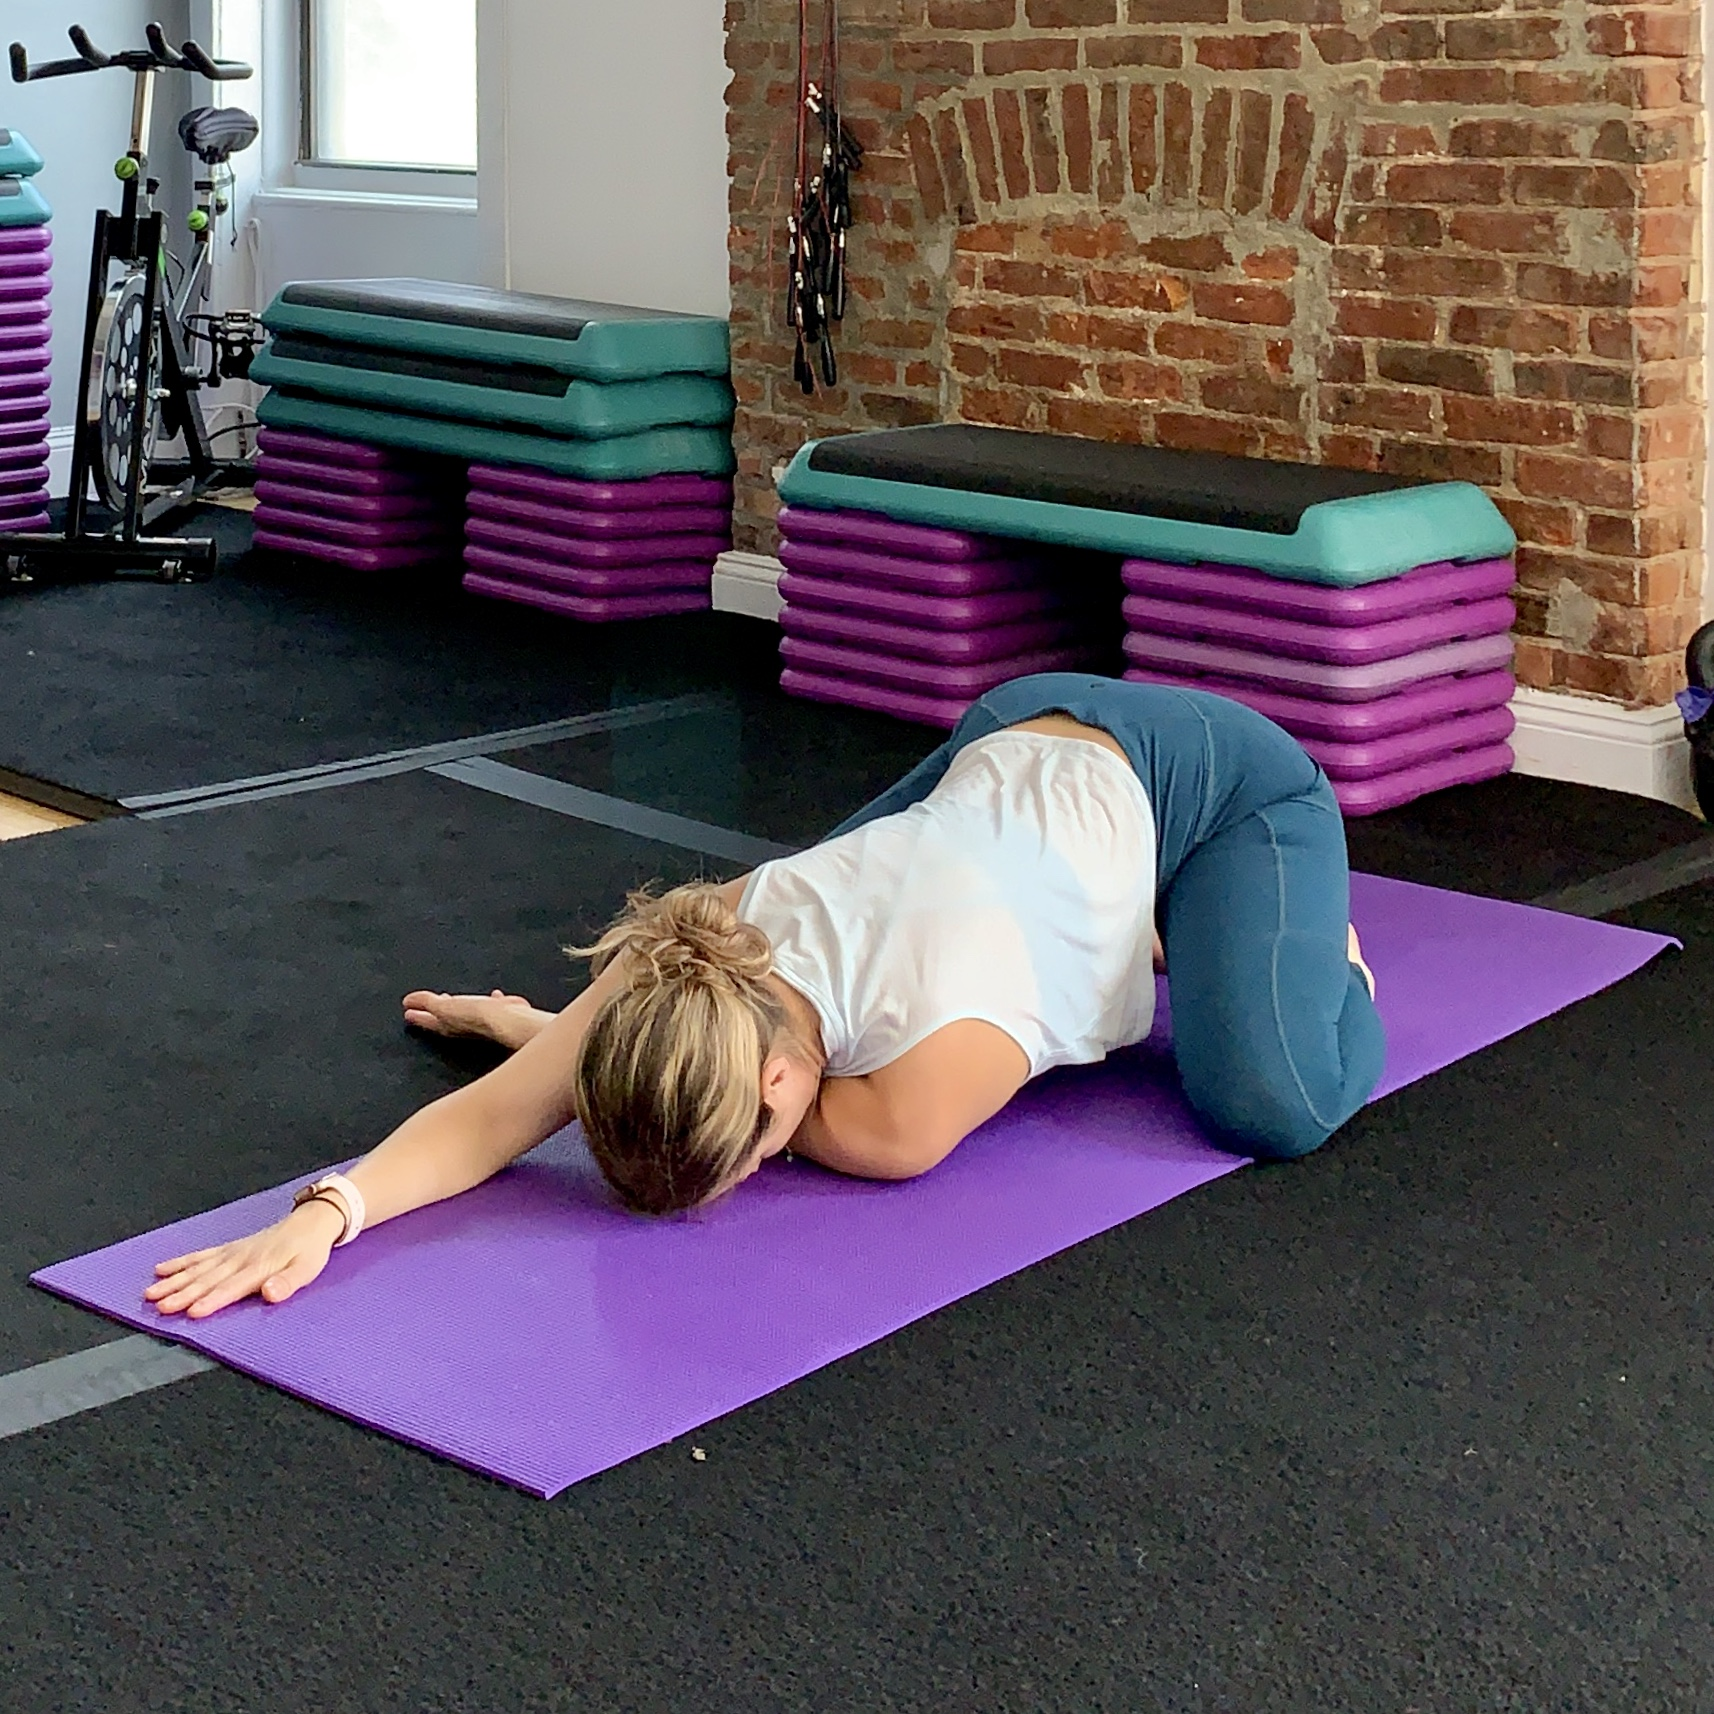 Private Yoga - At home, in a private gym space, or online.We can focus on specific training goals, or beginner-friendly yoga for relaxation and overall well-being.Certified Yoga Teacher (RYT200, The Yoga Seed).